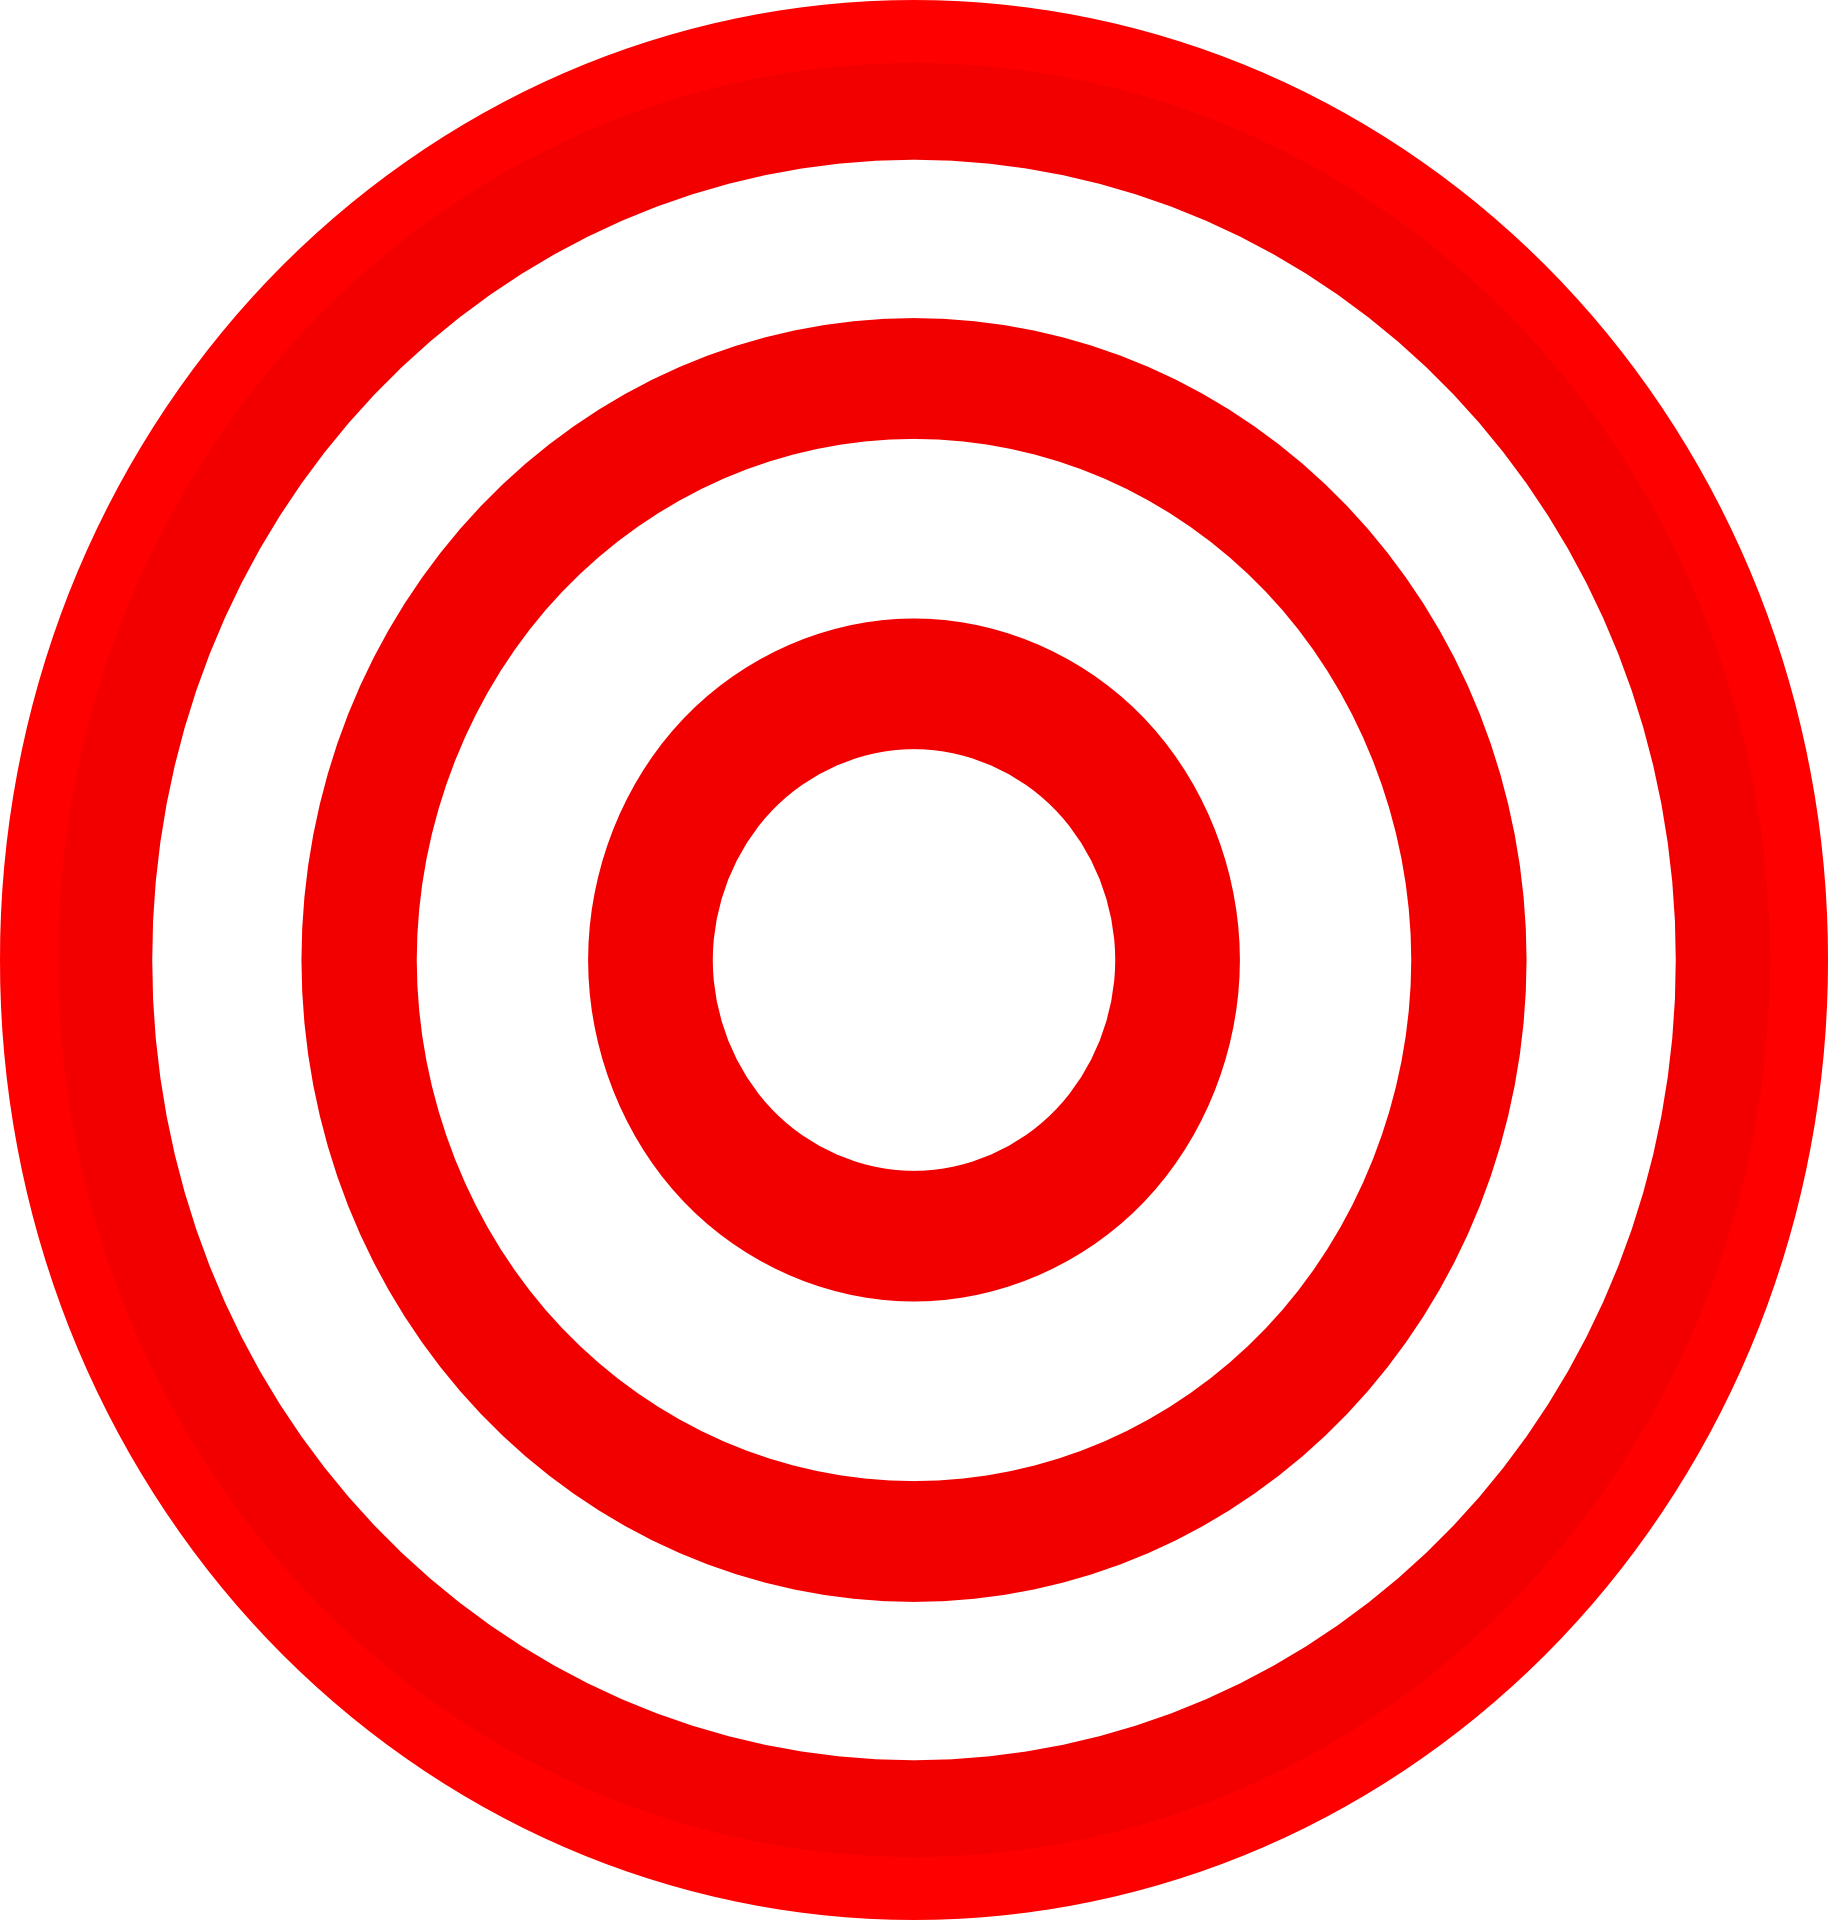 Darts shooting target clip. Bullseye clipart red